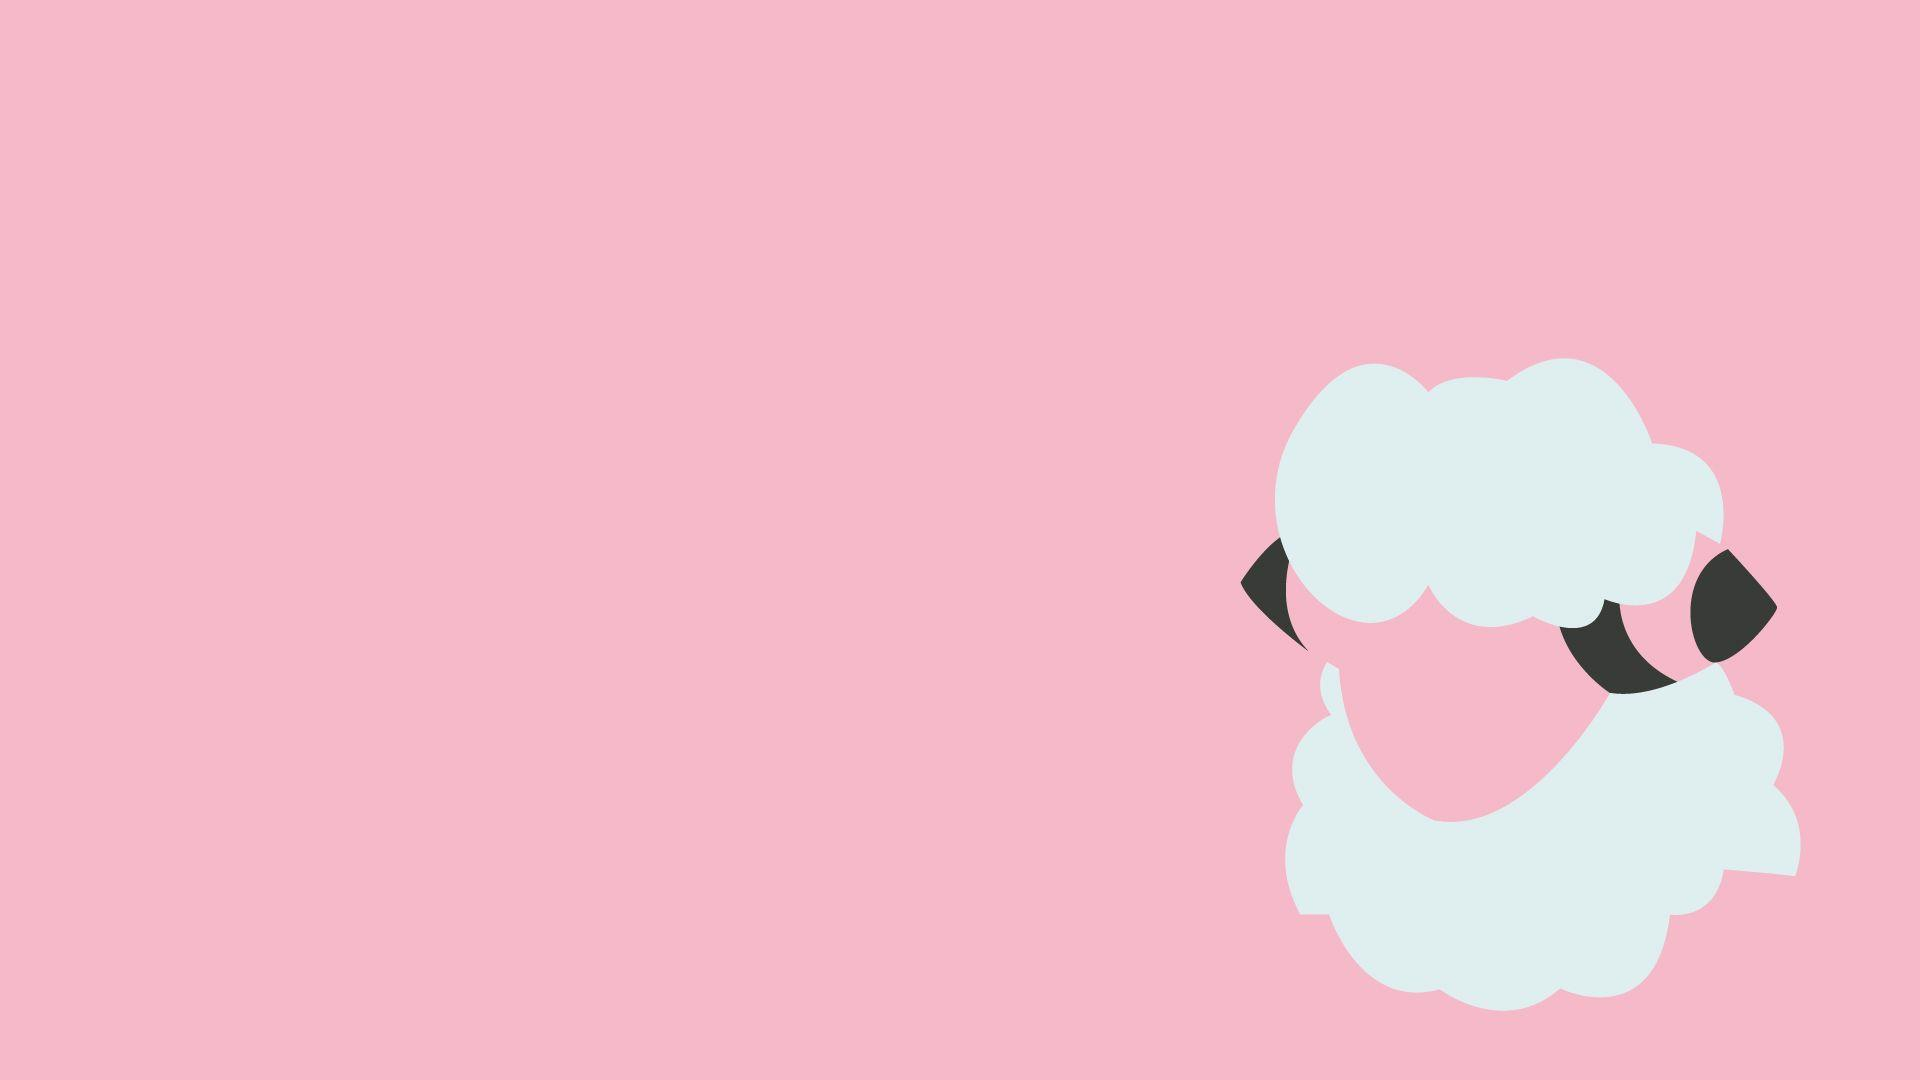 Ash character Flaaffy Pokemon pink simple background wallpaper ...